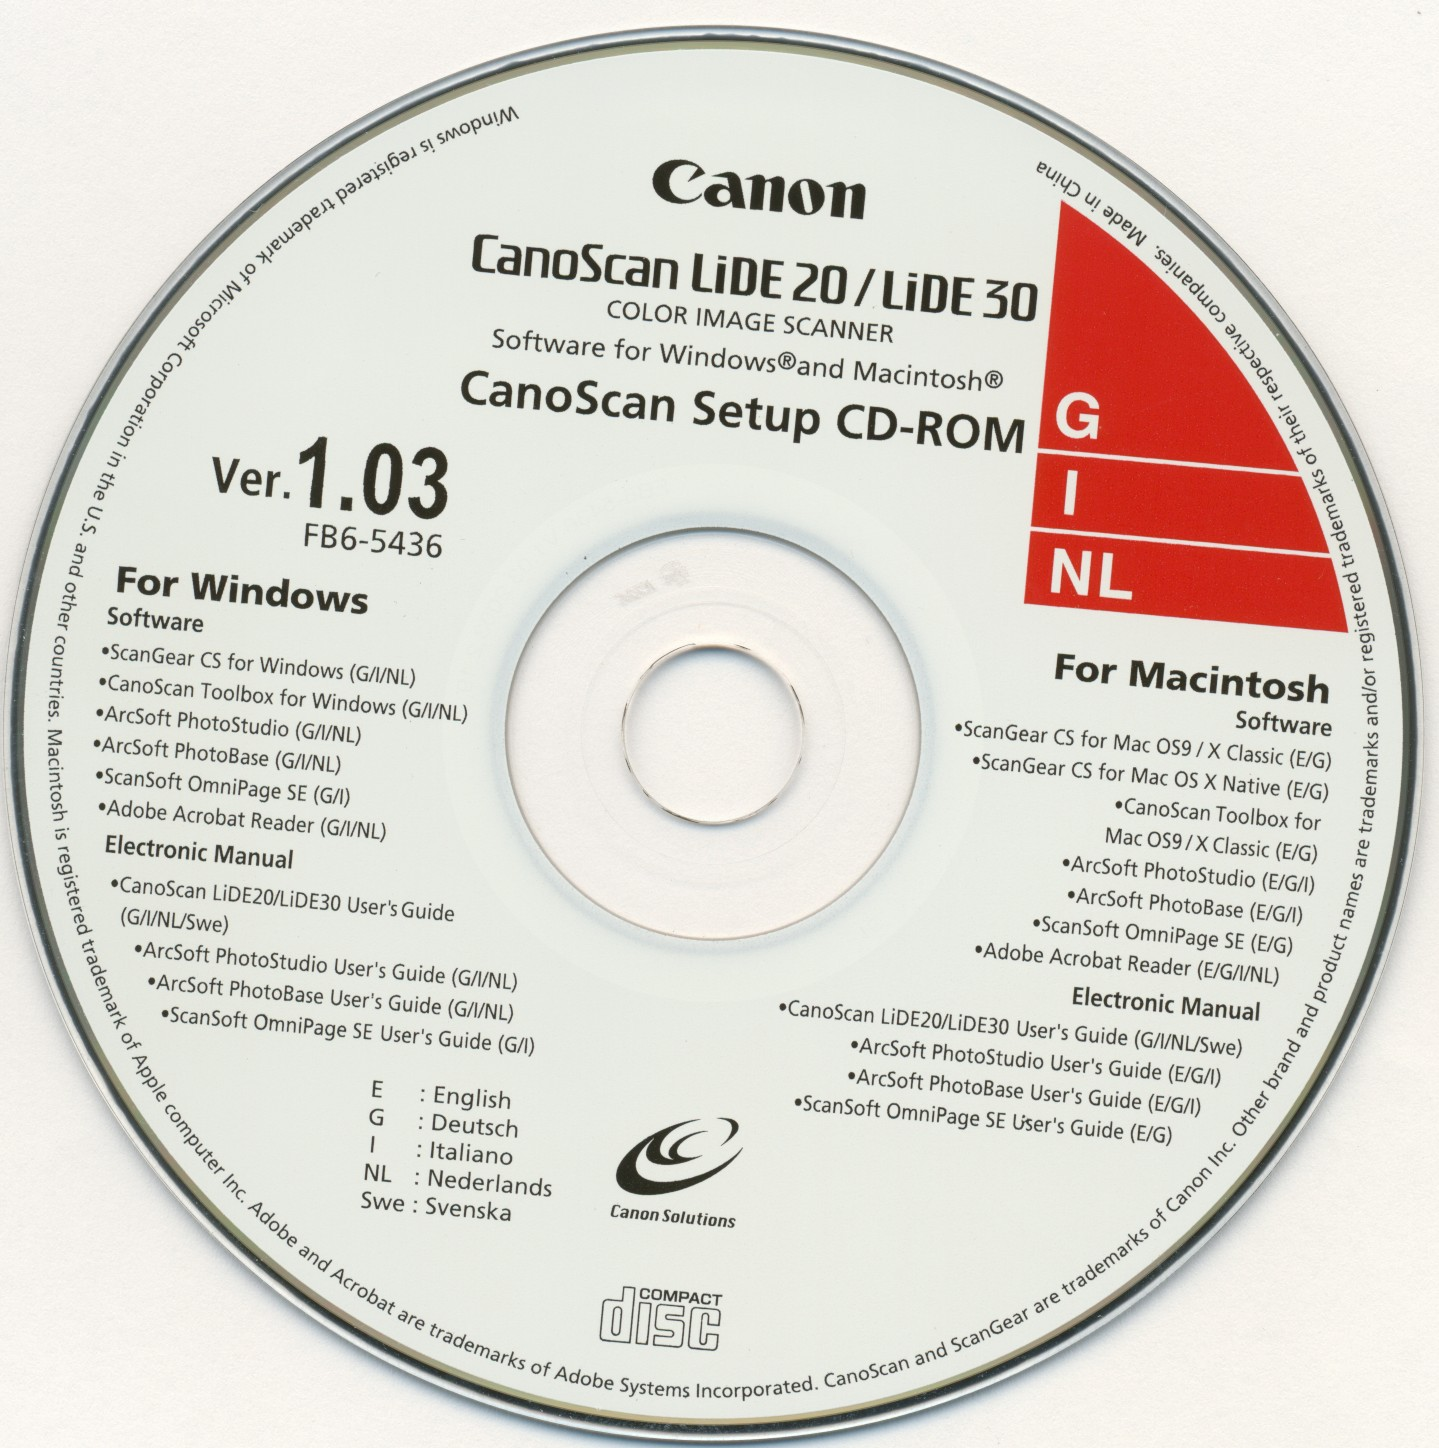 Canon Canoscan Lide 20 Lide 30 Ver 1 03 Canon Free Download Borrow And Streaming Internet Archive